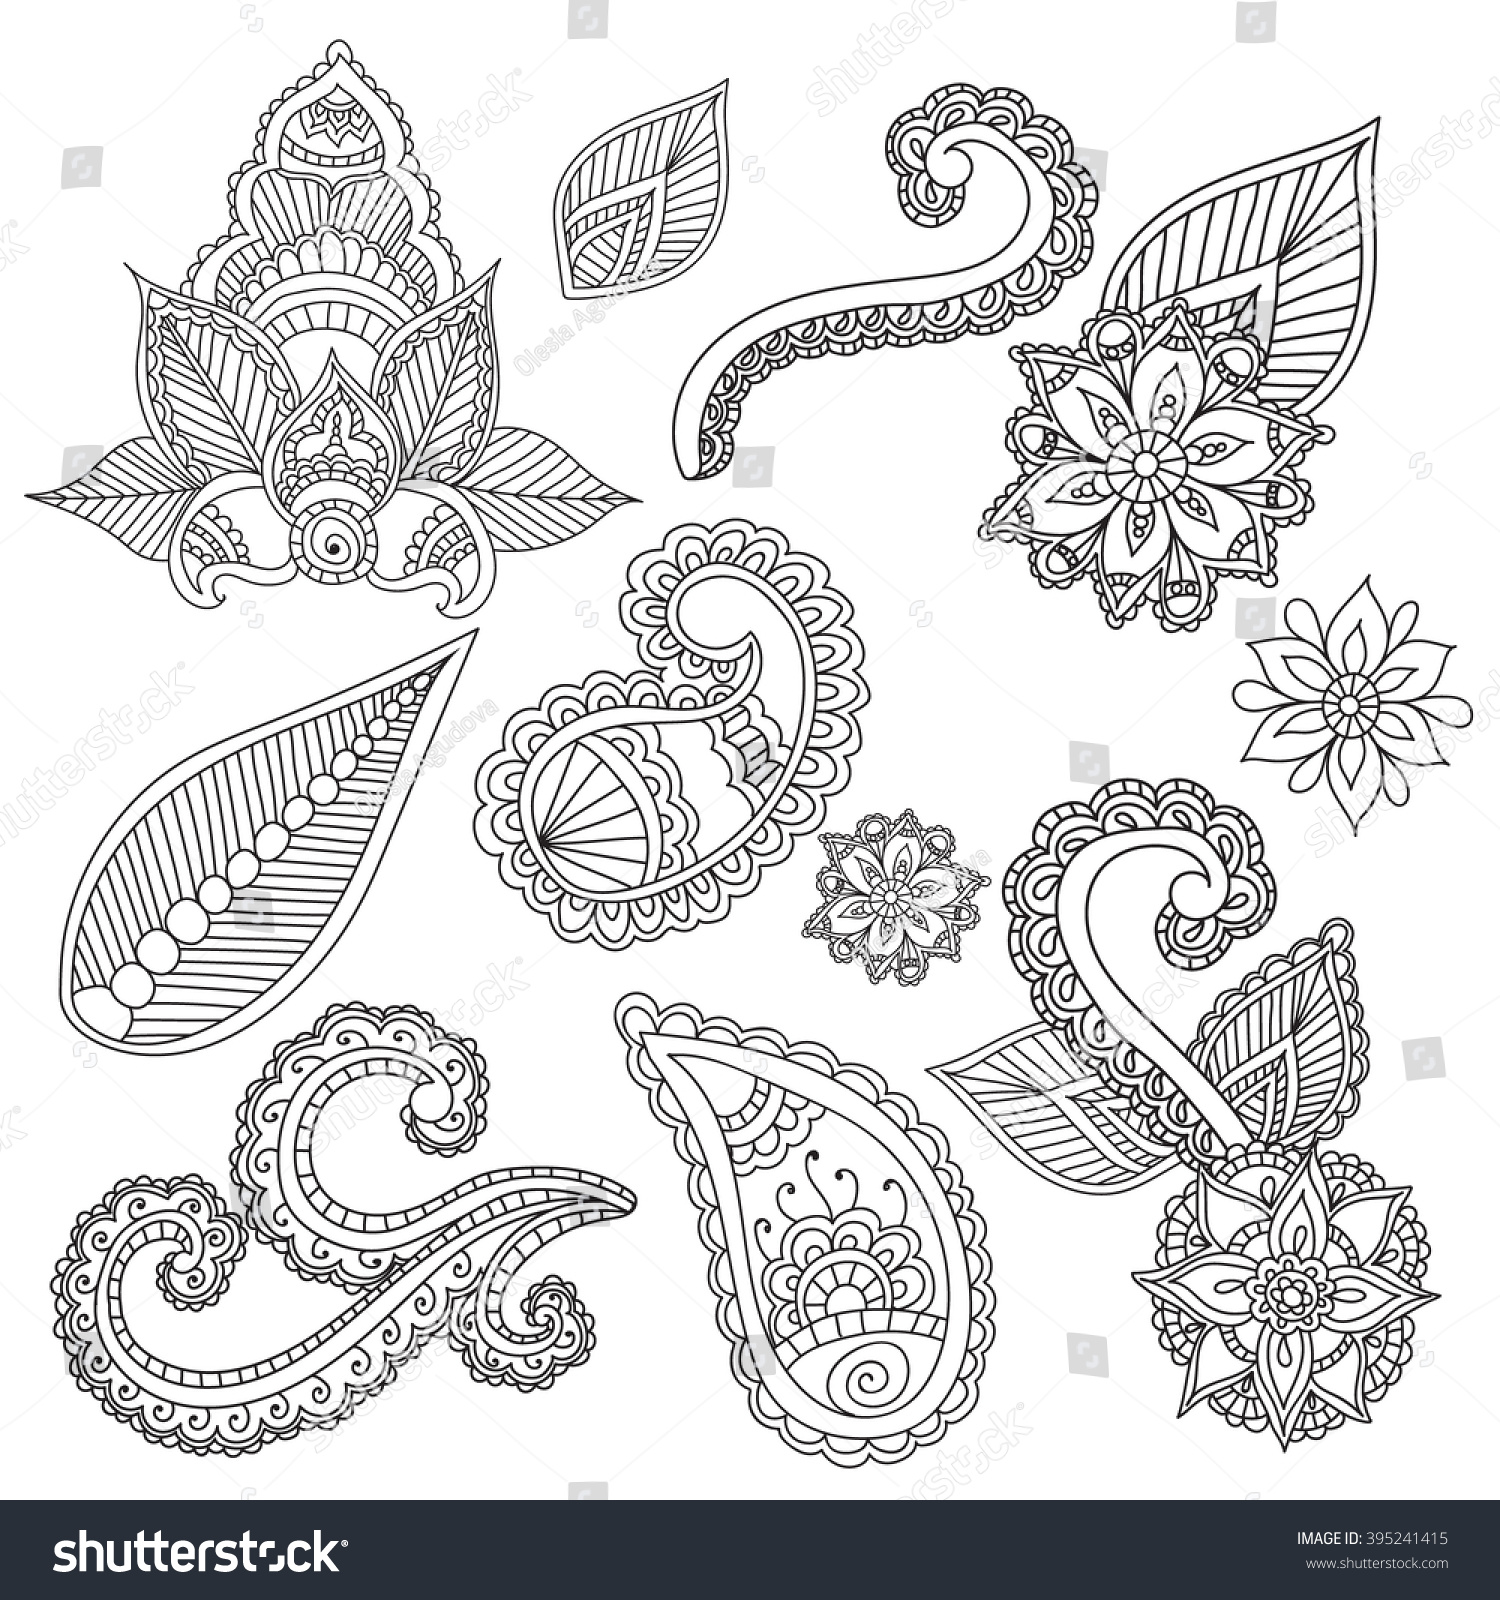 Coloring pages adults cet fo henna stock vector 395241415 for Henna coloring pages